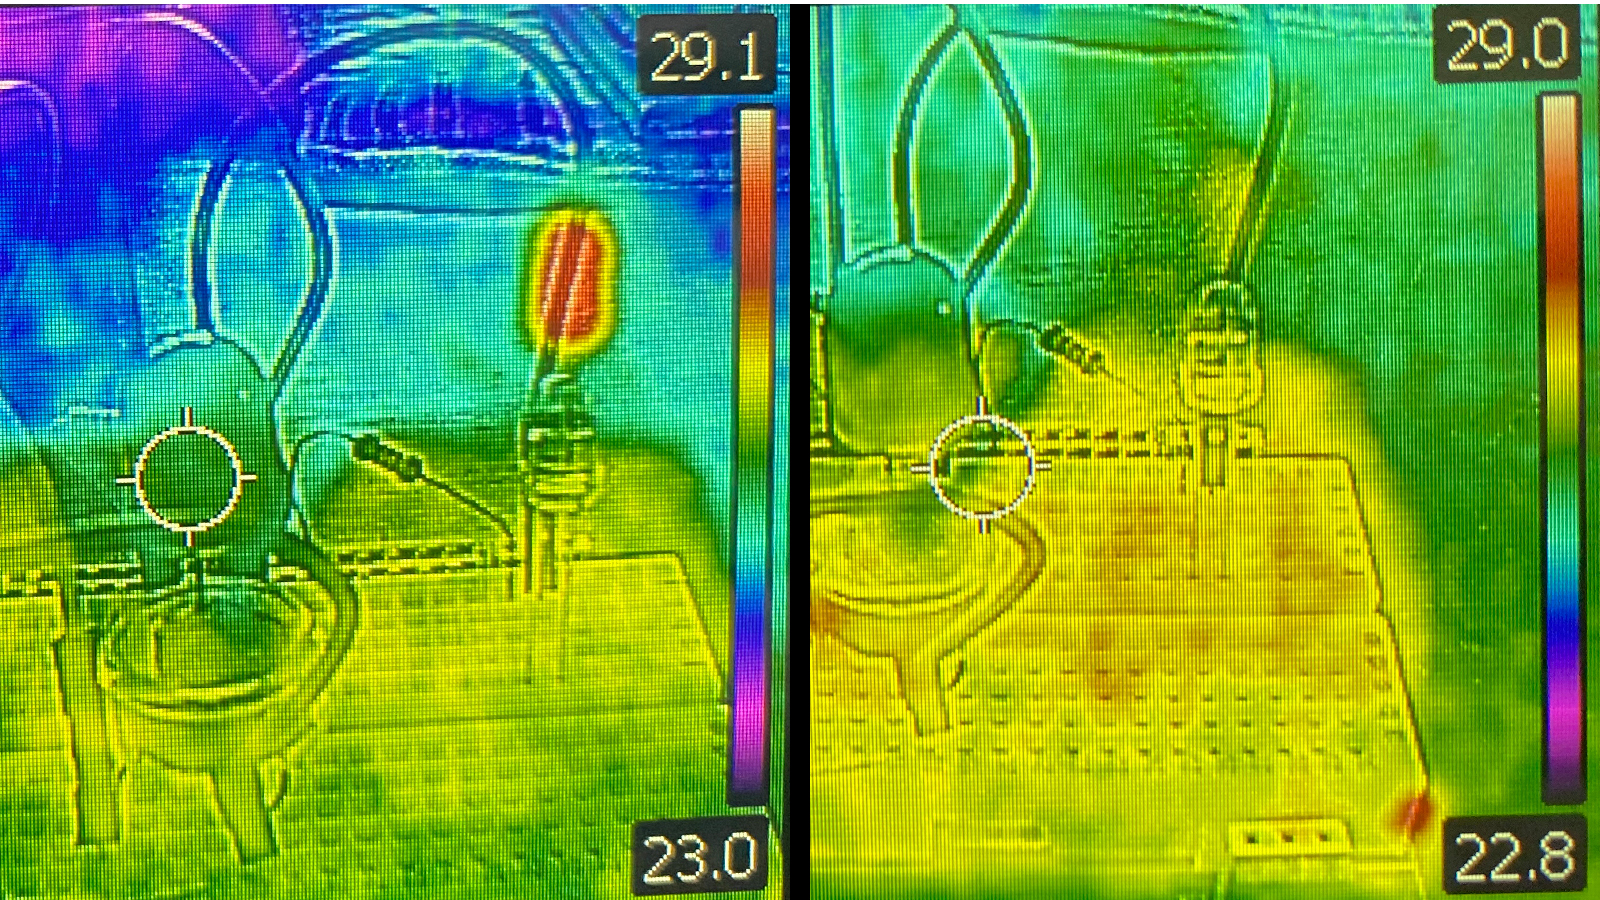 Side by side images show an IR camera view of the light detector. In one, the LED is off and the image appears mostly green and yellow. In the other image, one LED is turned on, which appears bright red and white in the IR camera.